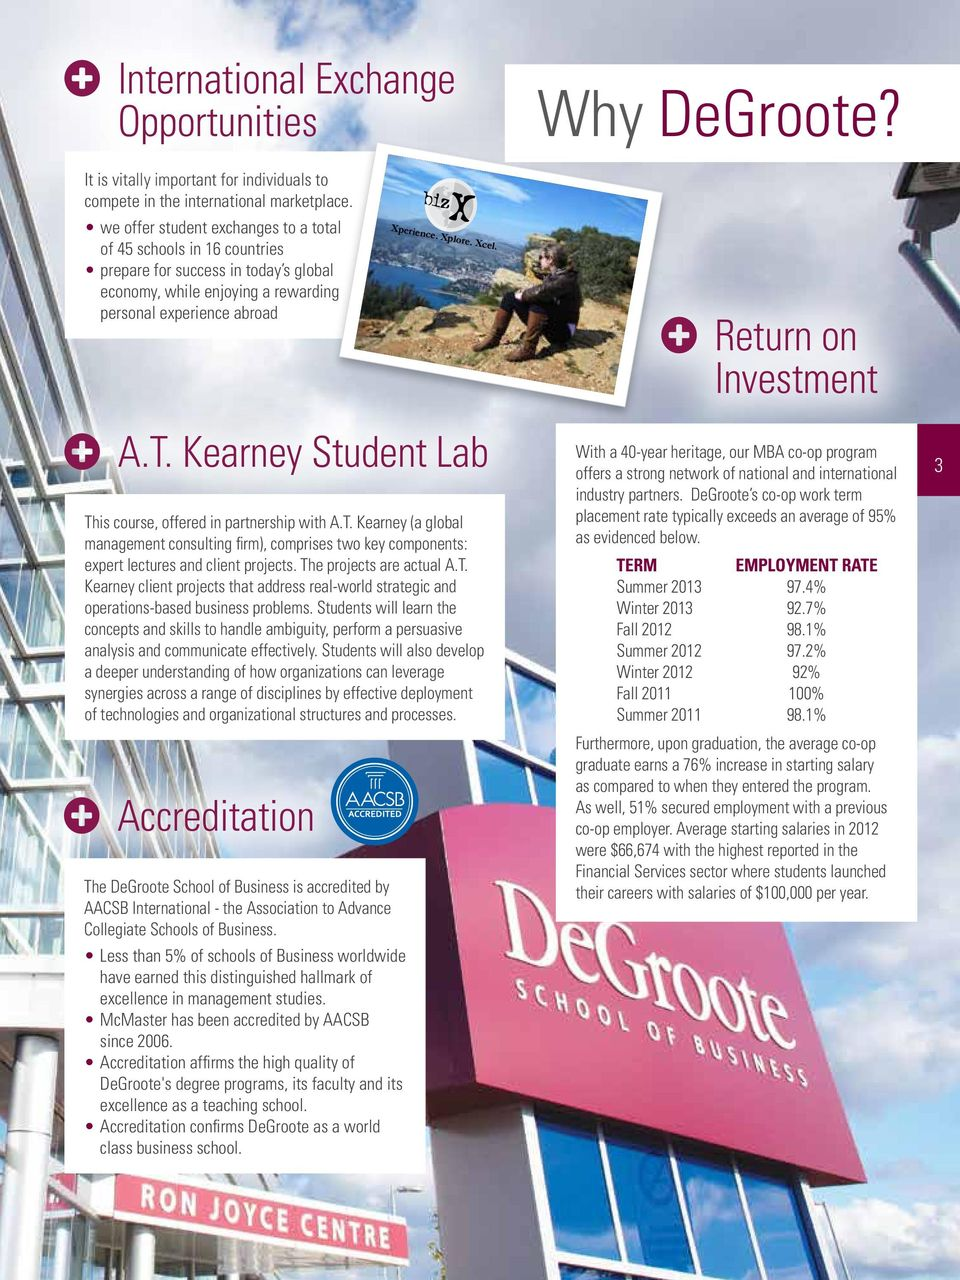 Kearney Student Lab This course, offered in partnership with A.T. Kearney (a global management consulting firm), comprises two key components: expert lectures and client projects.